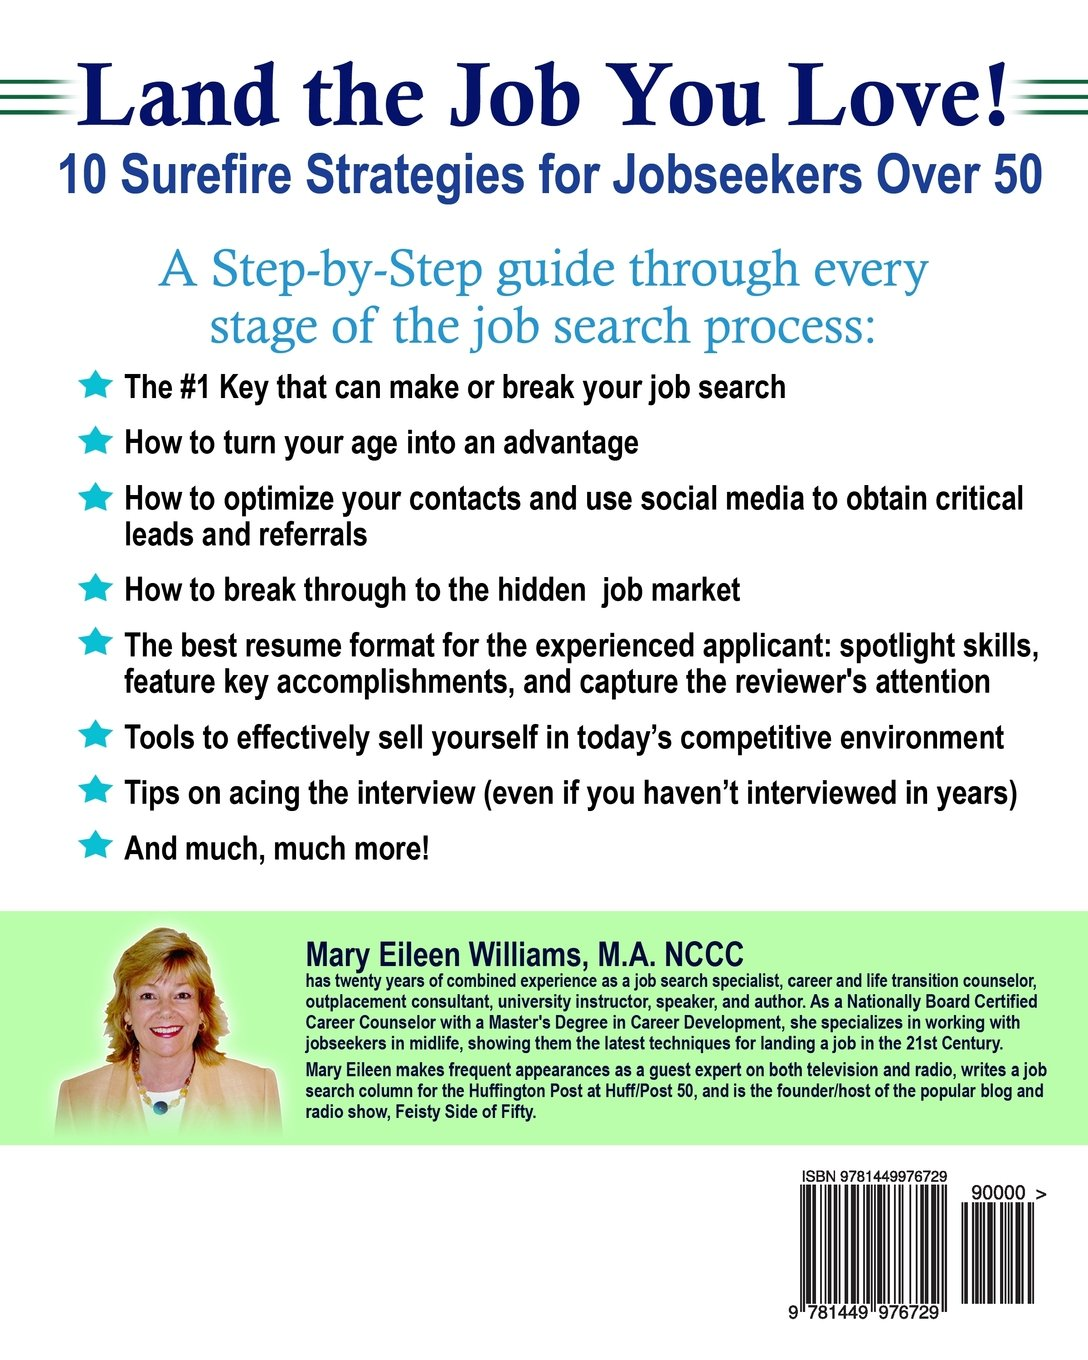 land the job you love 10 surefire strategies for jobseekers over land the job you love 10 surefire strategies for jobseekers over 50 mary eileen williams ma 9781449976729 amazon com books